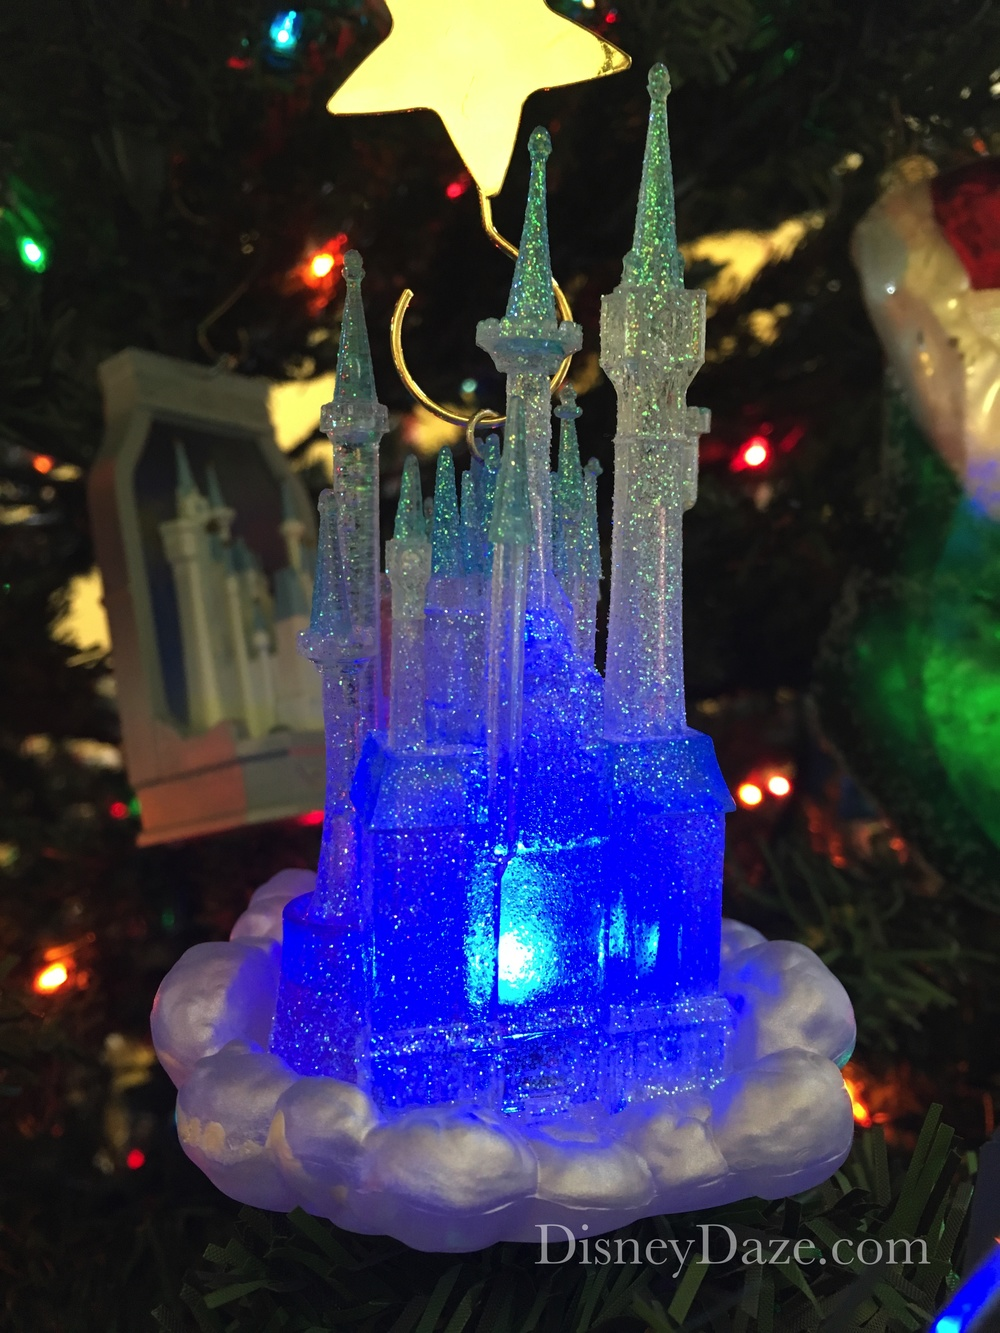 Sleeping Beauty's Castle by Hallmark.